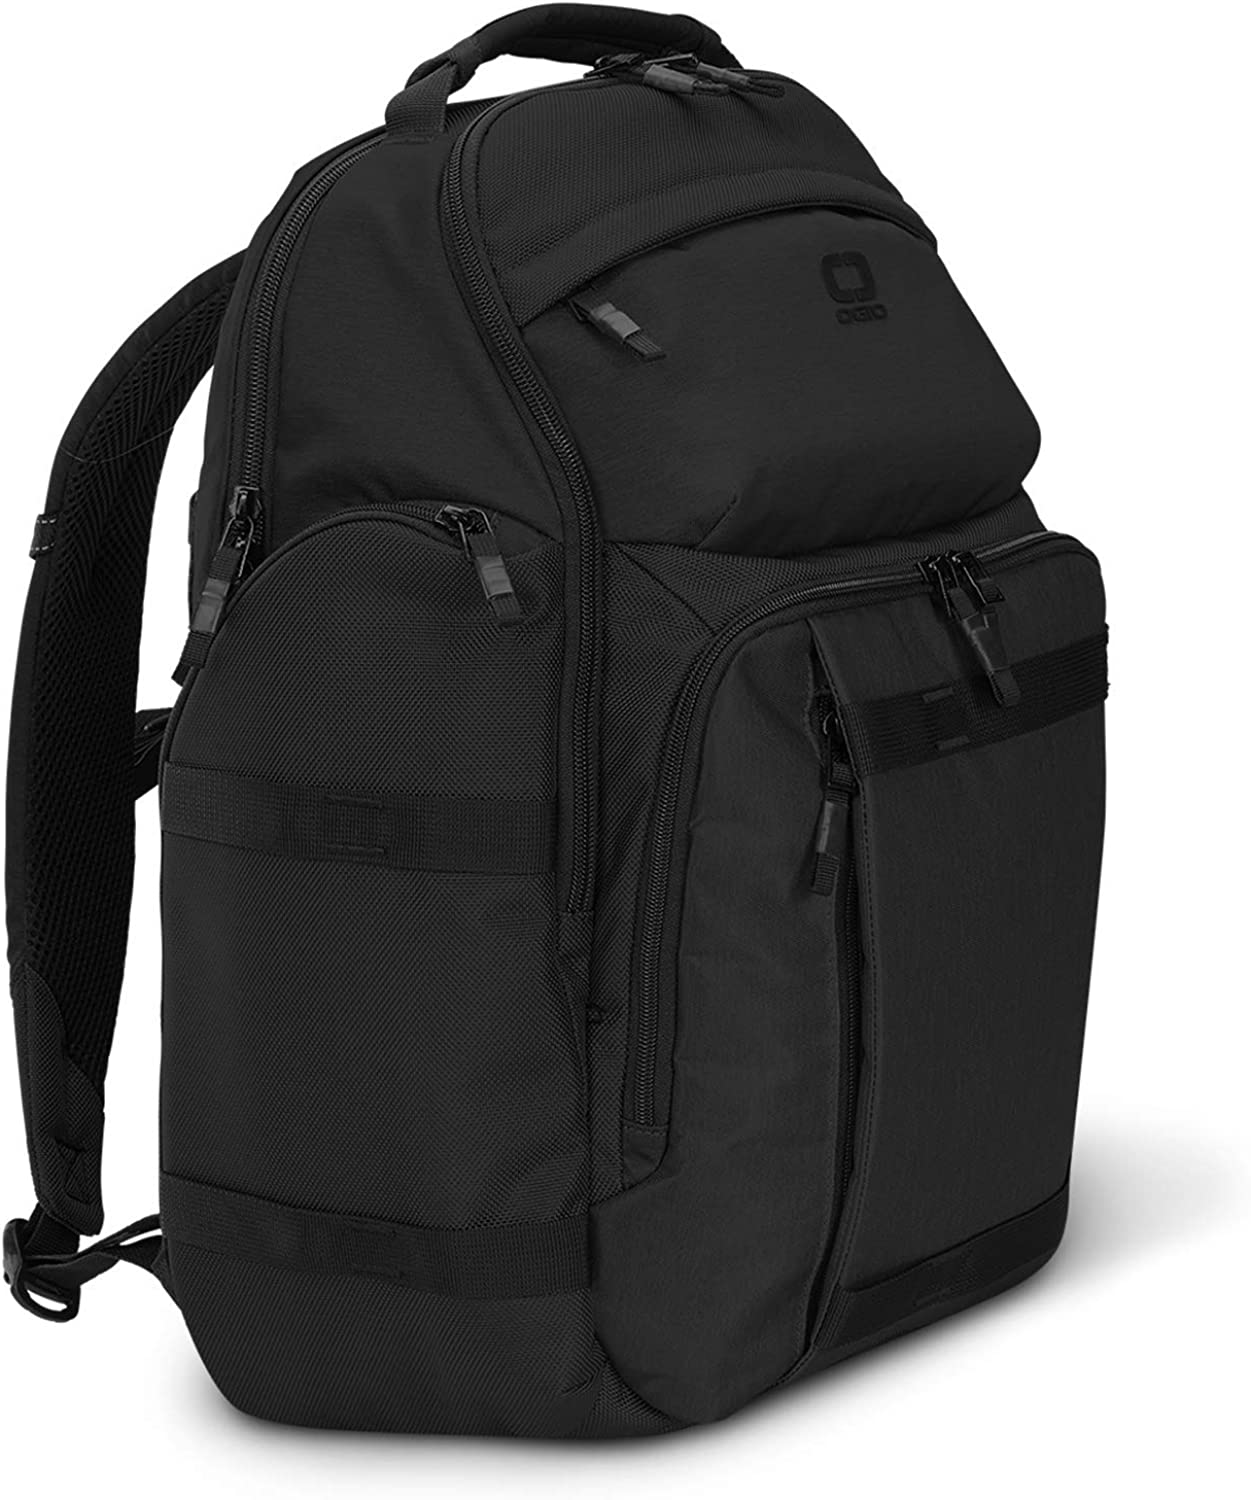 OGIO Pace 25L Laptop Backpack